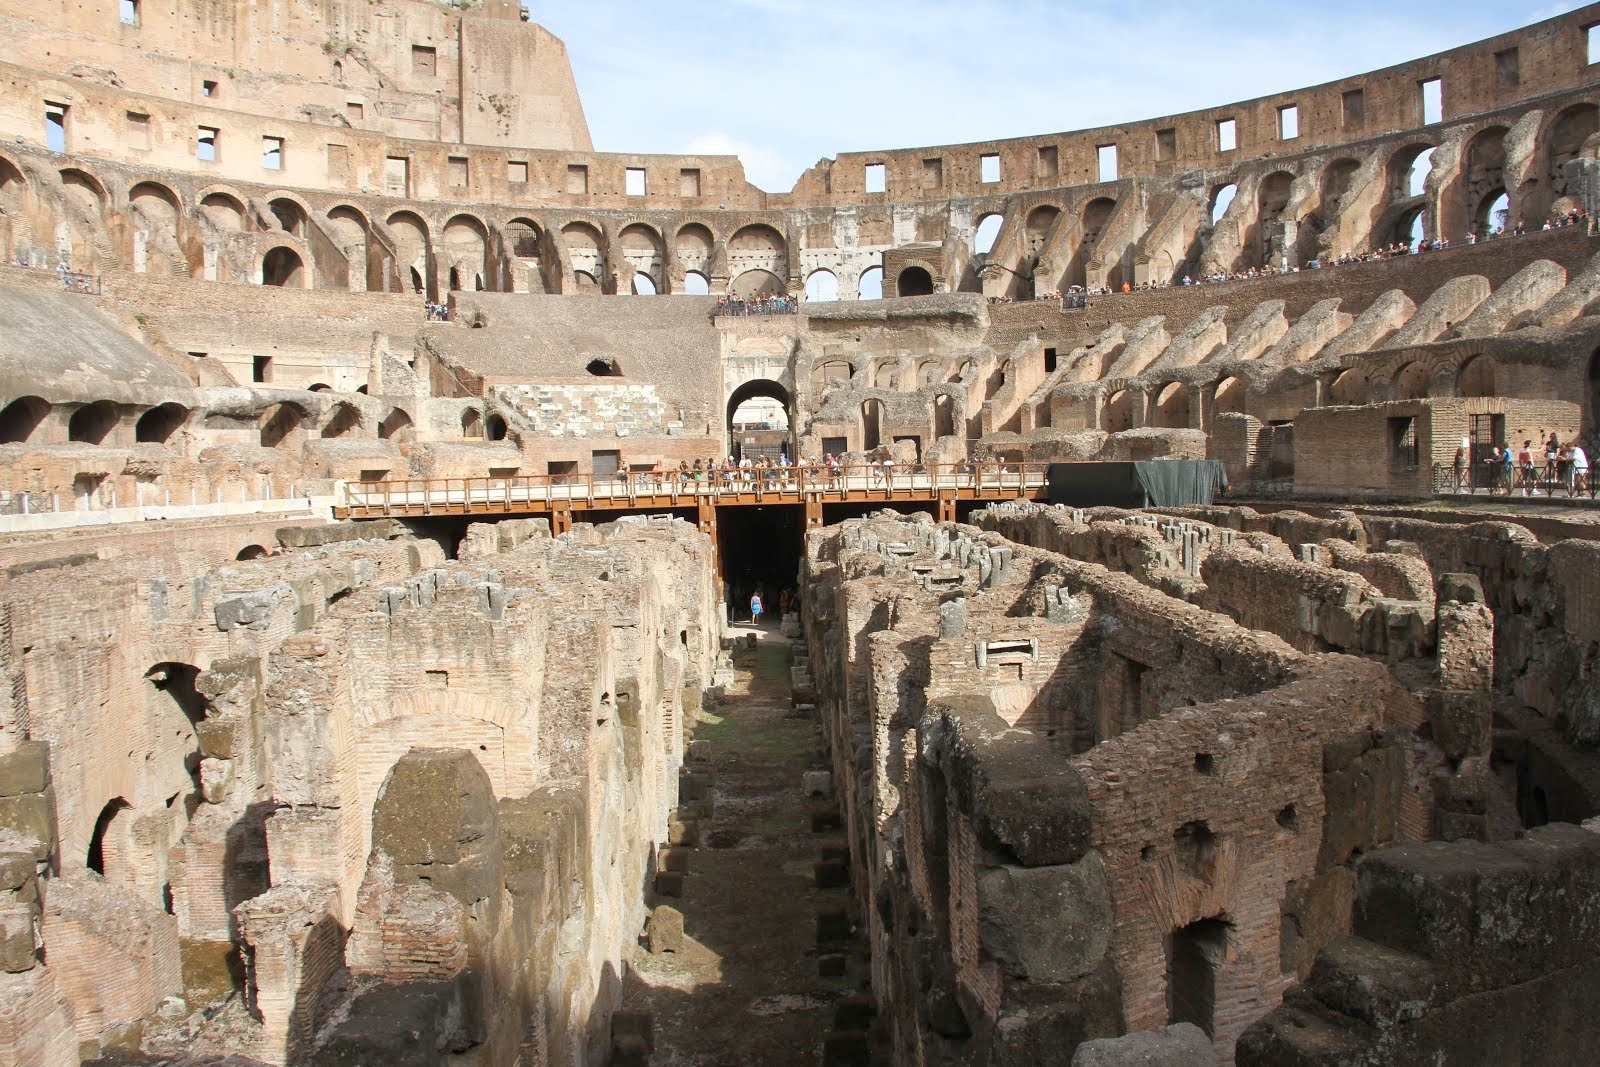 Exploring Inside the Colosseum in Rome